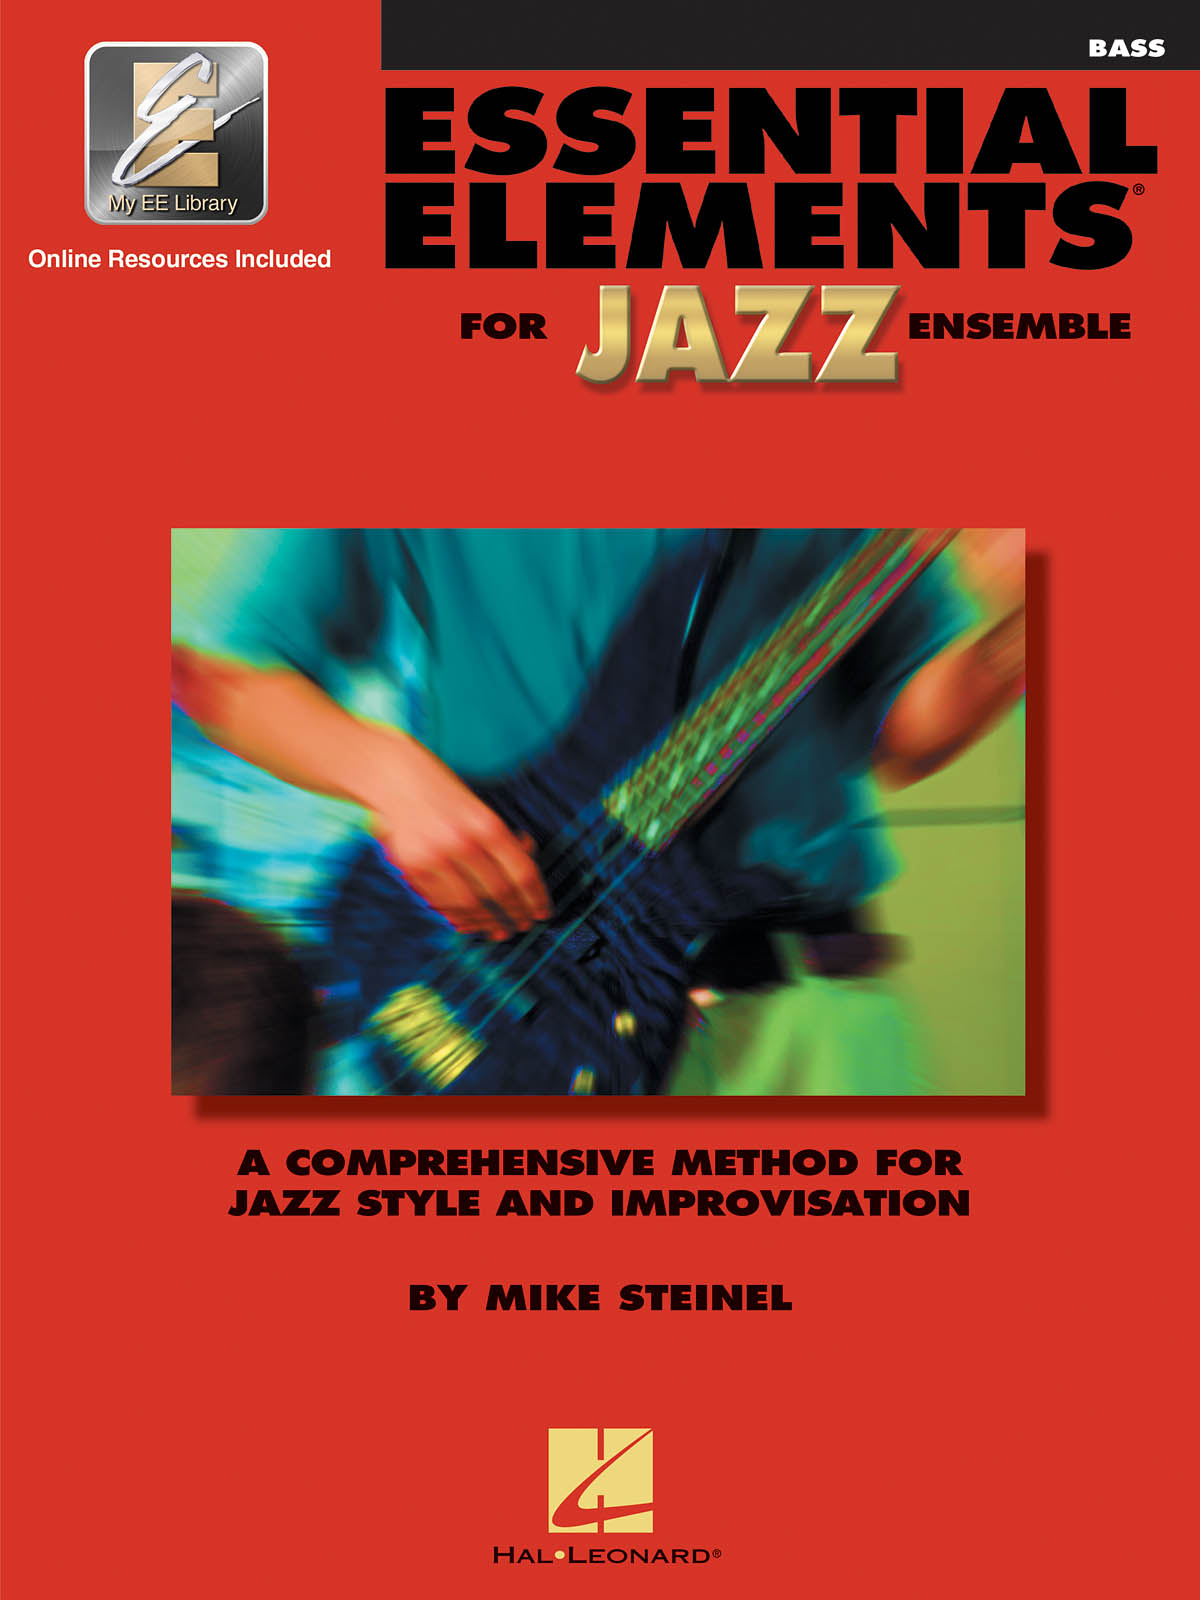 Essential Elements for Jazz Ensemble (Bass): Jazz Ensemble: Book & Audio